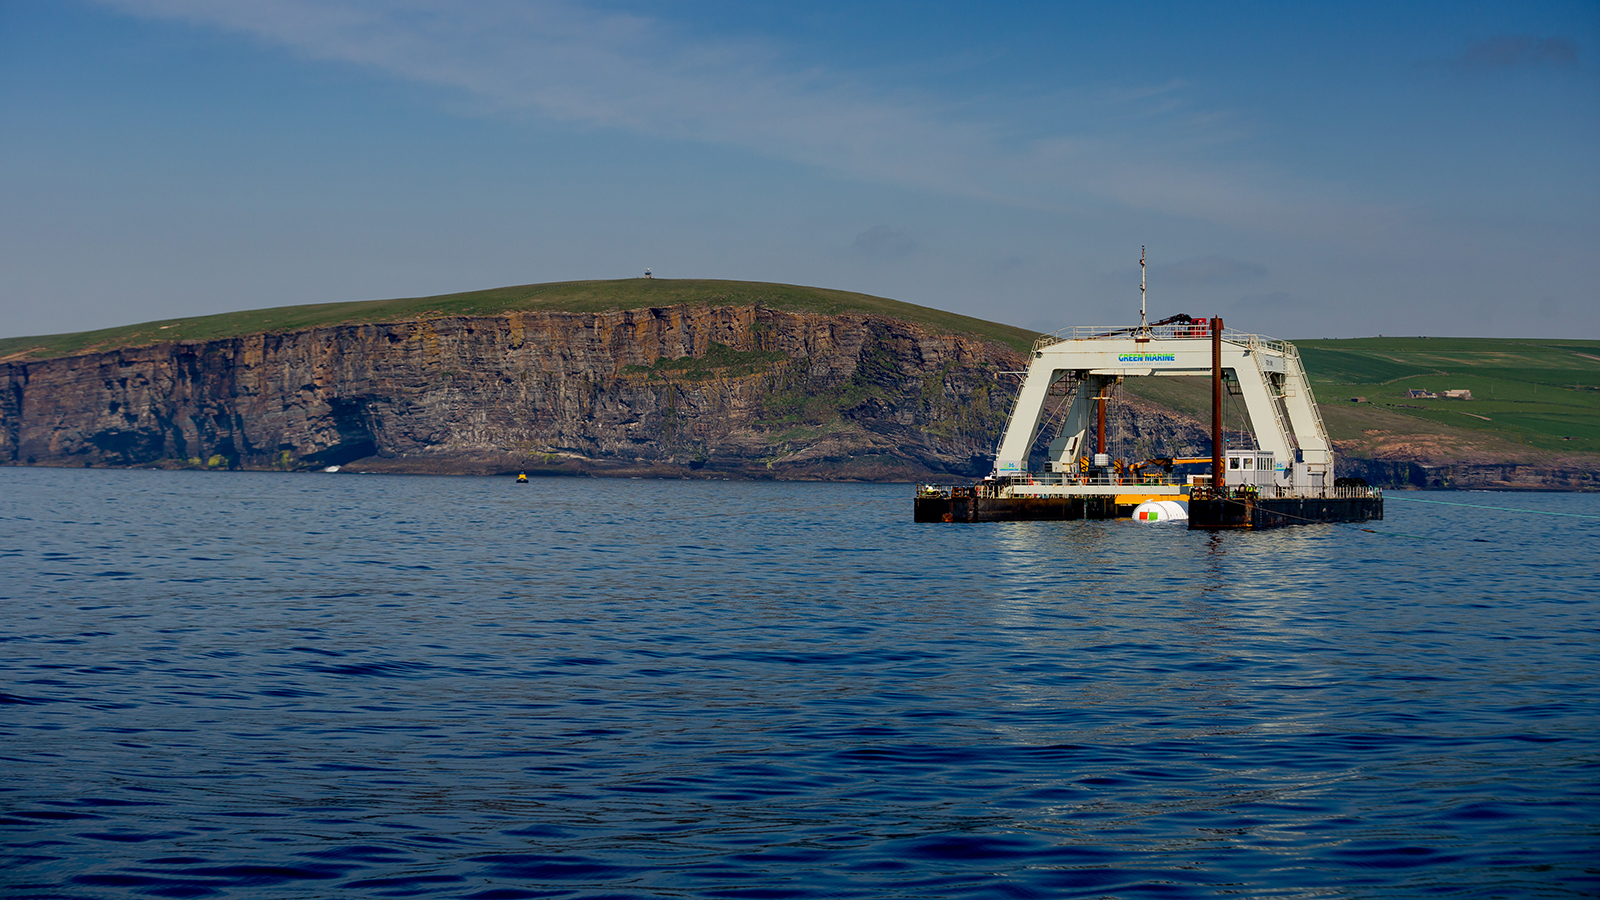 Microsoft's Project Natick on deployment day off the coast of Orkney Island, Scotland Friday June 1, 2018. (Photography by Scott Eklund/Red Box Pictures)